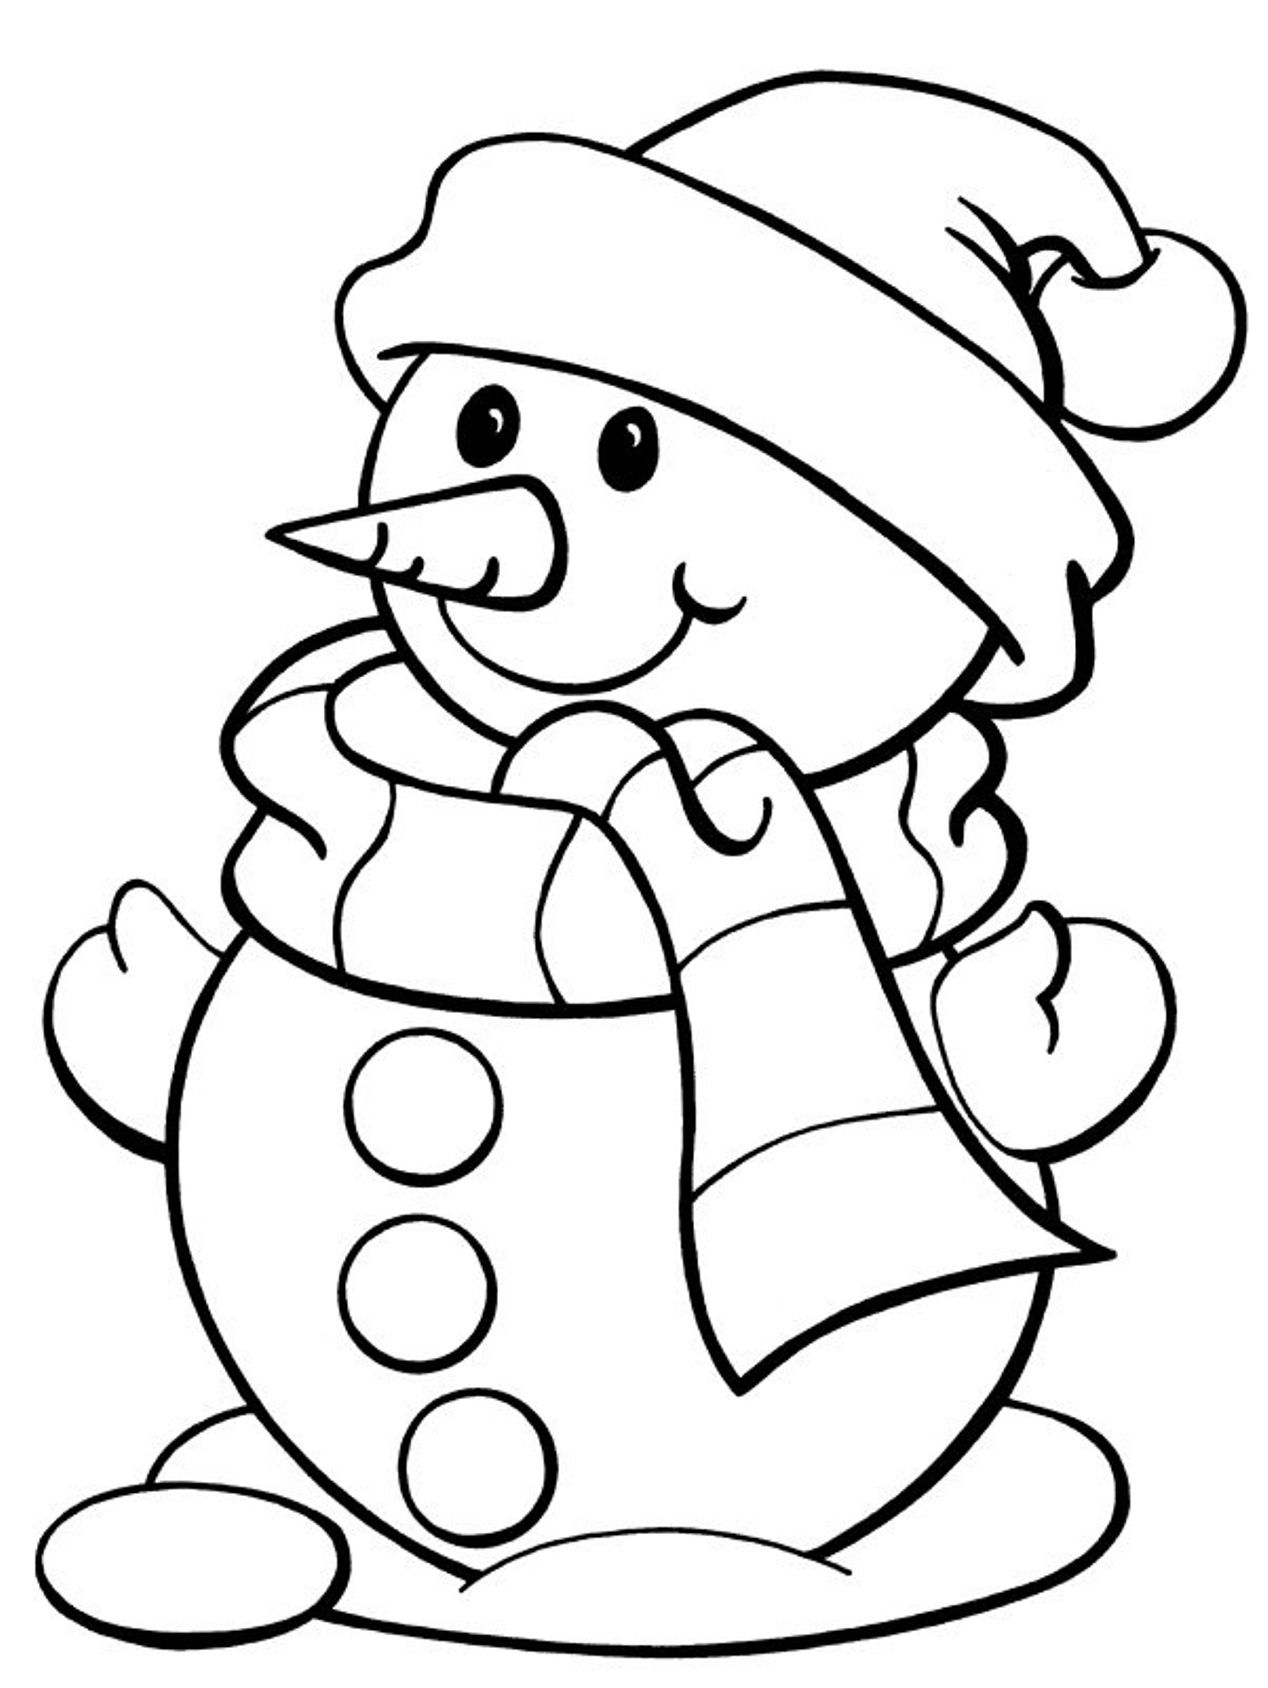 Wonderful Winter Coloring, Snowman Coloring Pages Winter Free: Snowman Coloring Pages  Winter FreeFull Size Image